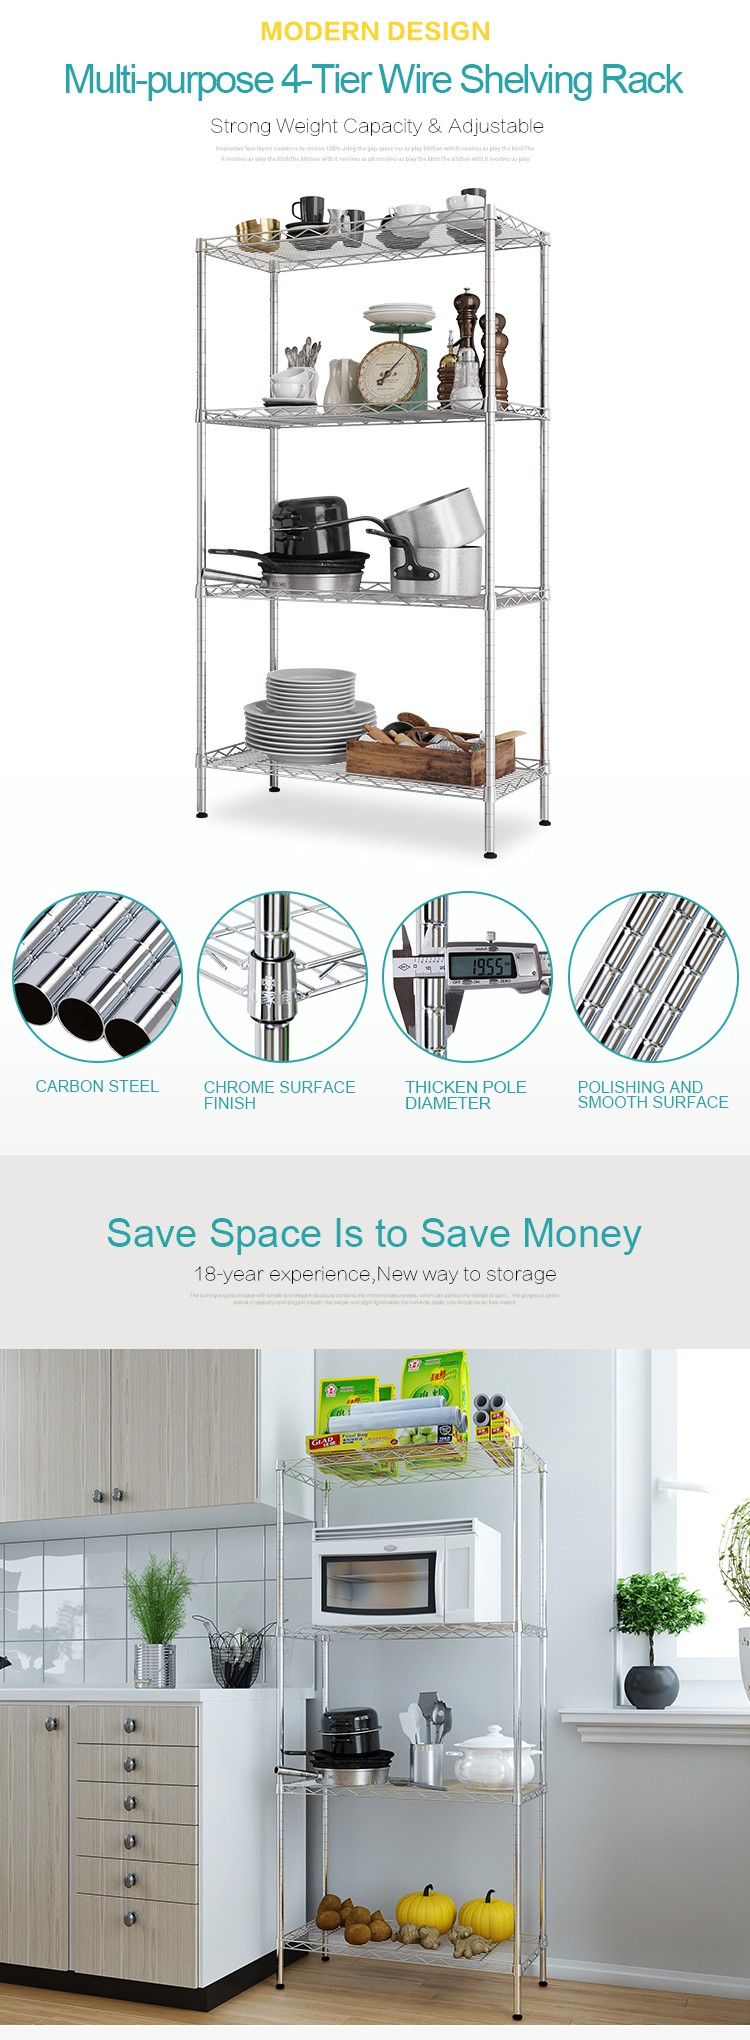 Xm_202 Kitchen Wire Shelving Storage Microwave Oven Rack Metal Book ...